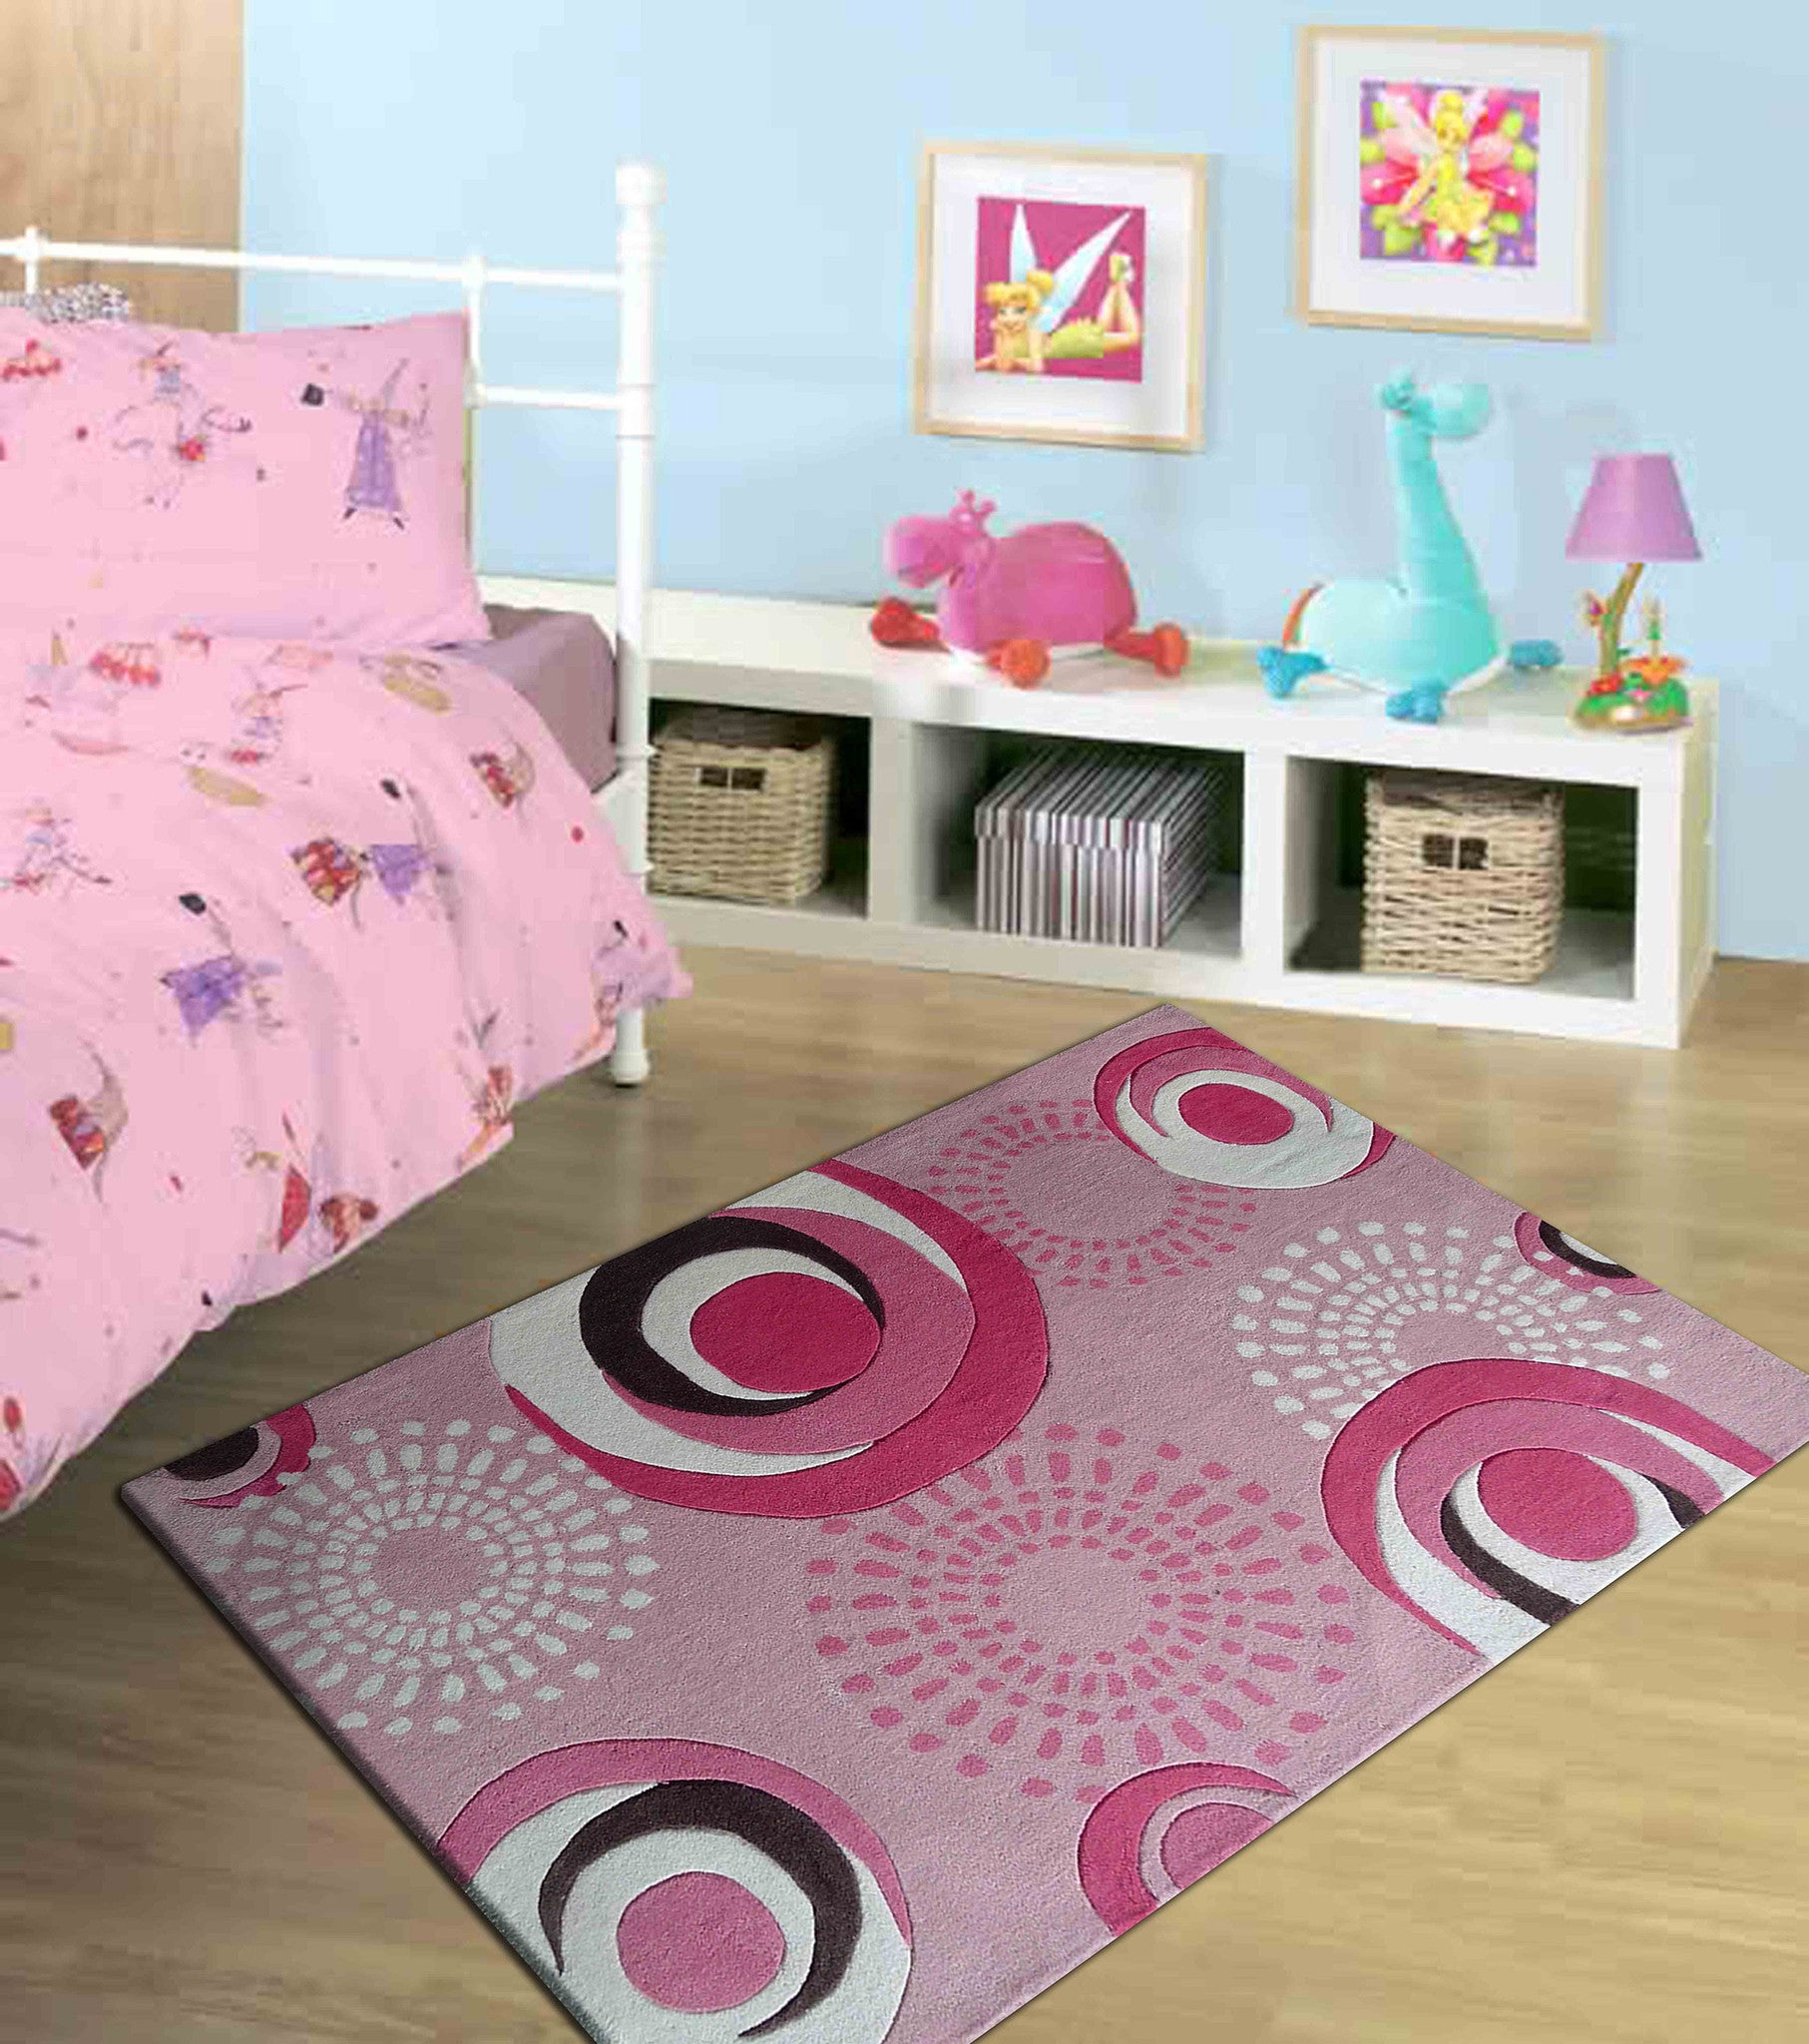 4 39 x 6 39 ft pink kids bedroom area rug with pink circles for Rugs for kids bedrooms